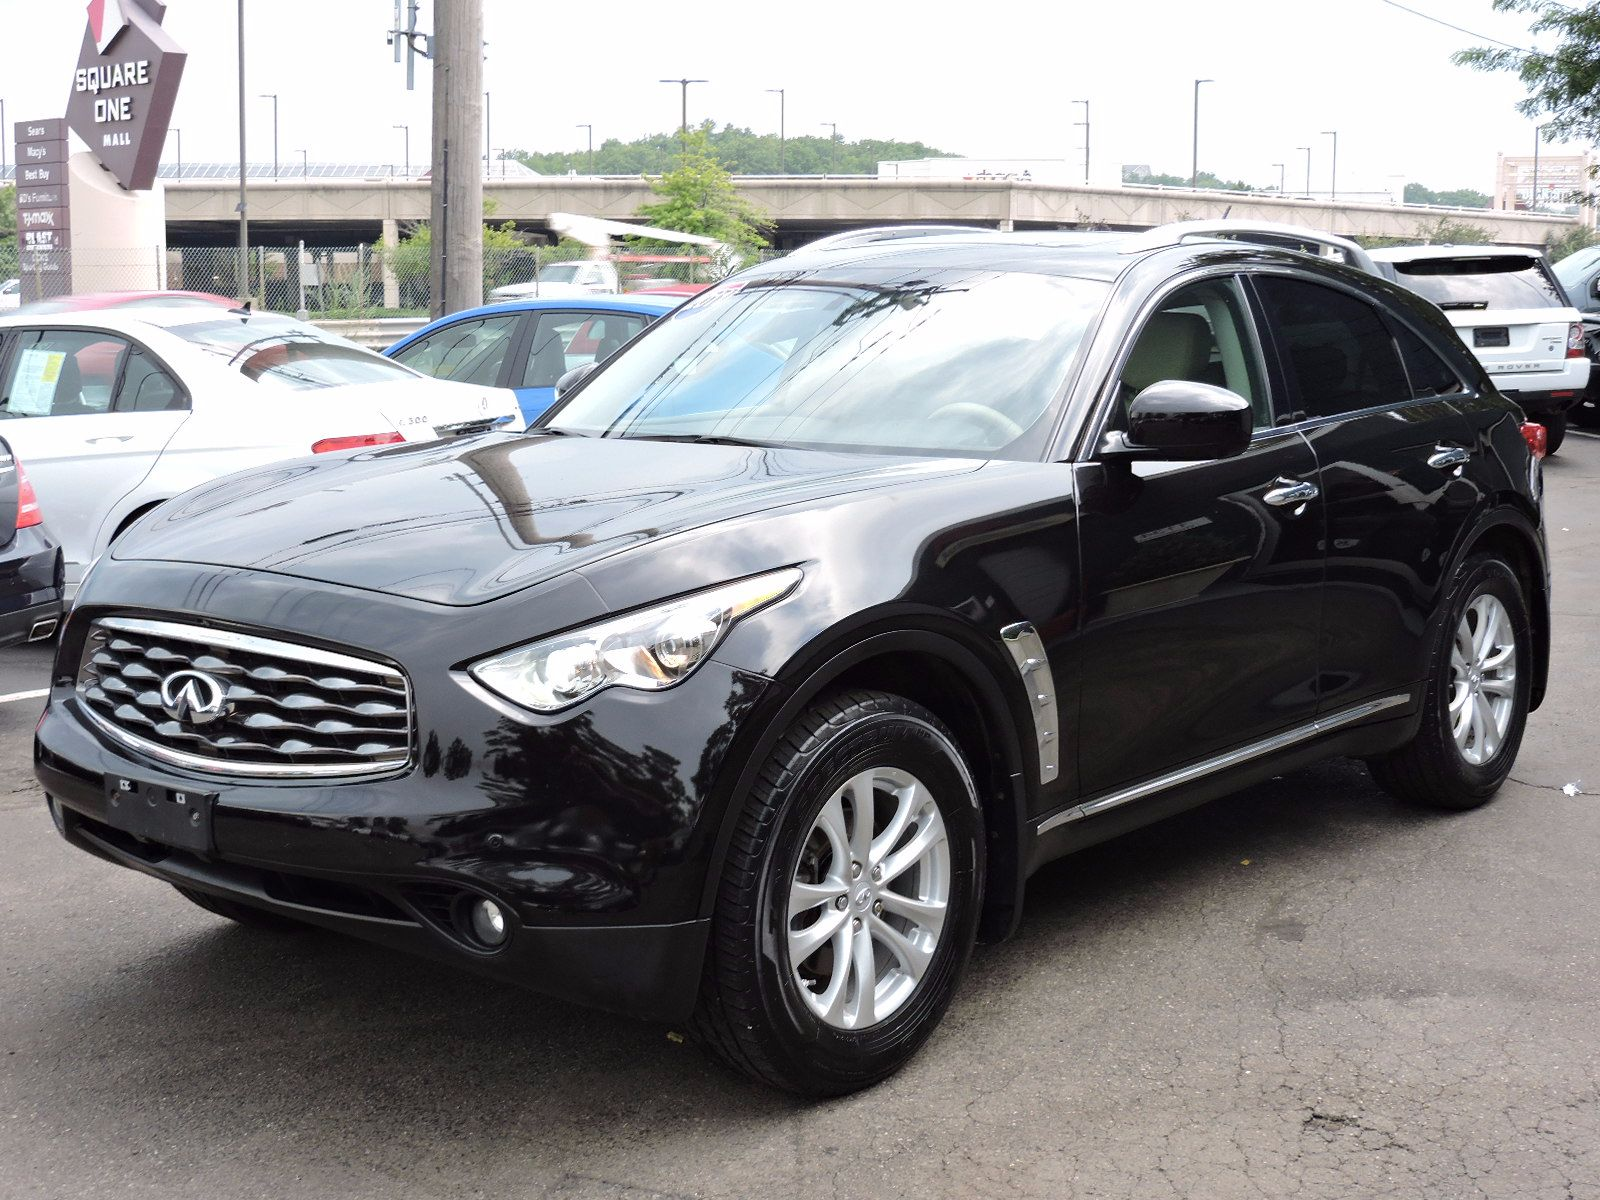 2011 Infiniti FX35 - All Wheel Drive - Navigation